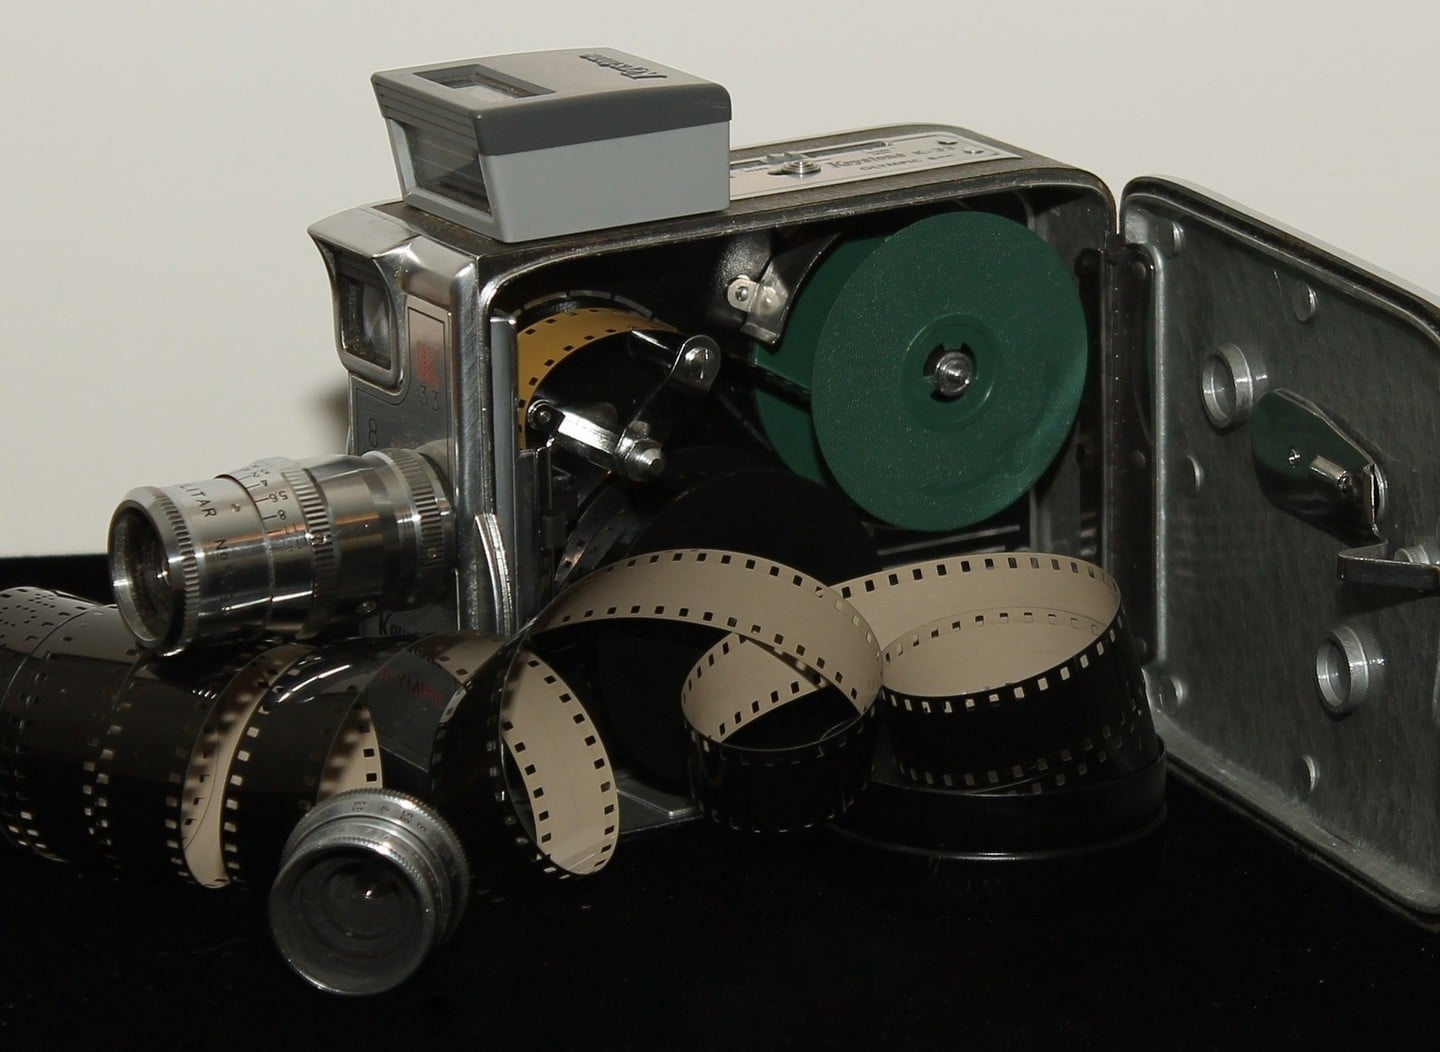 The 8mm Vintage Camera App Lets You Relive the Glory Days of Film